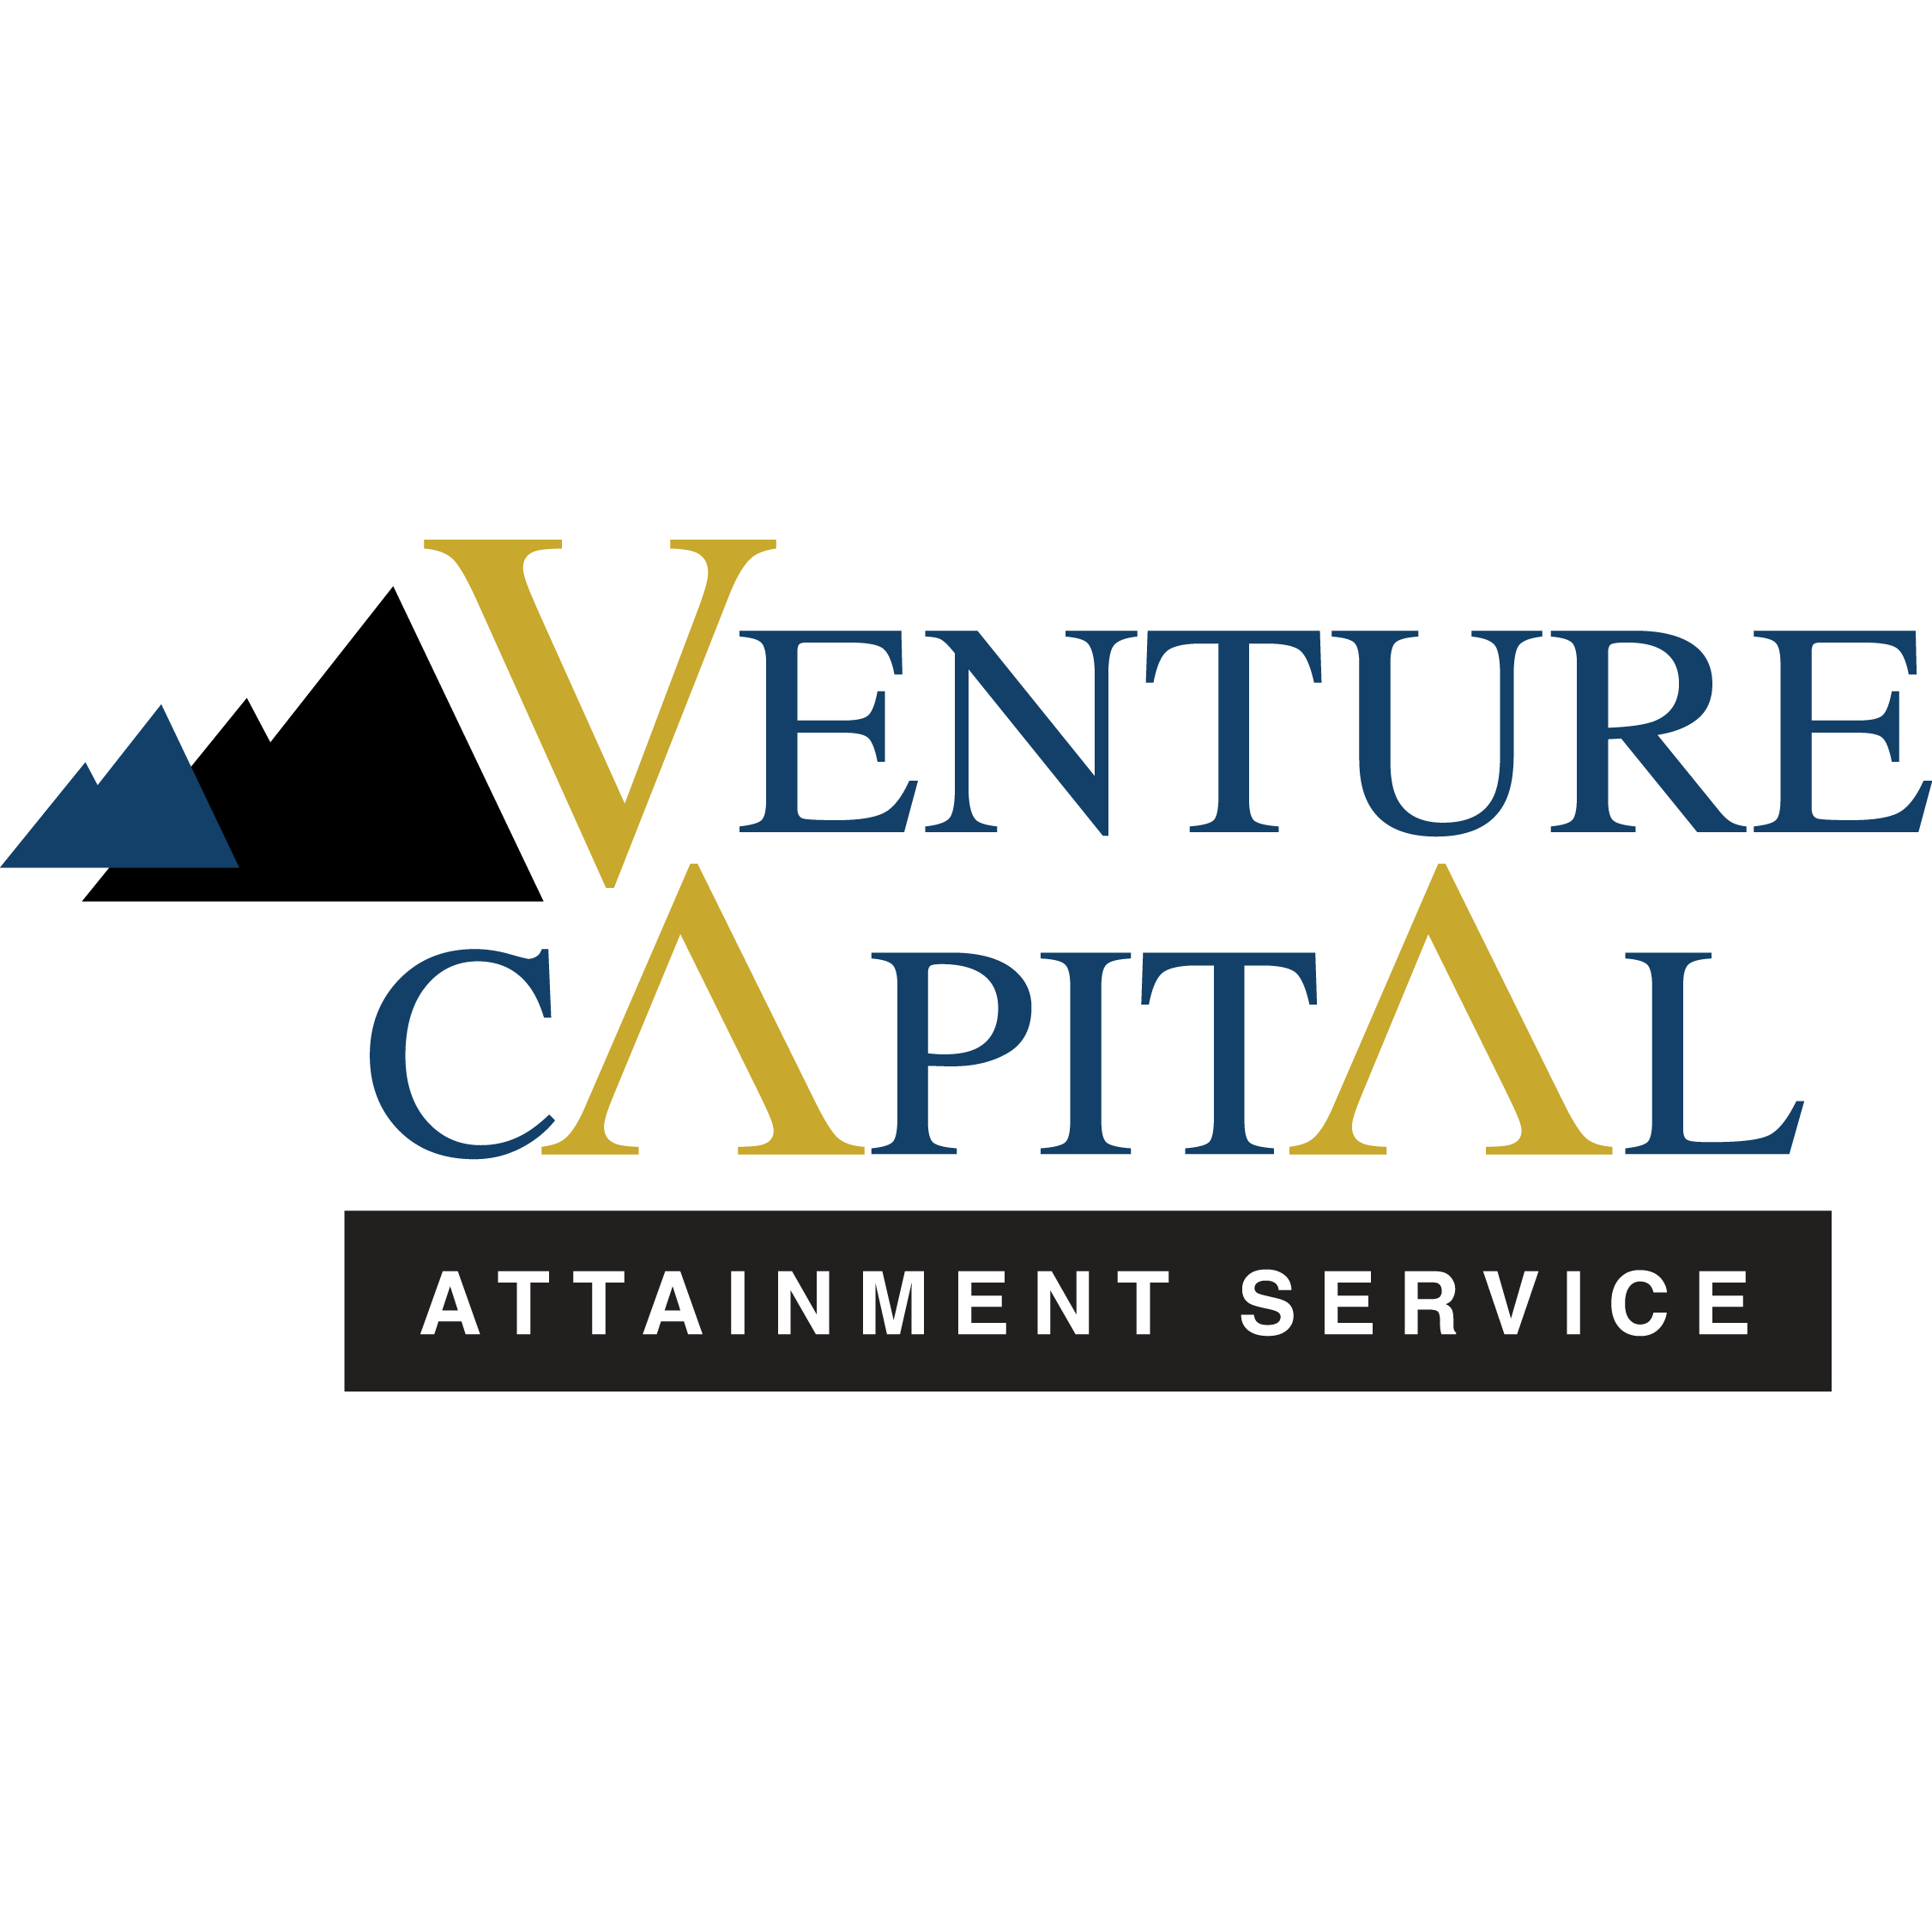 Venture Capital Attainment Service Coupons near me in Los An